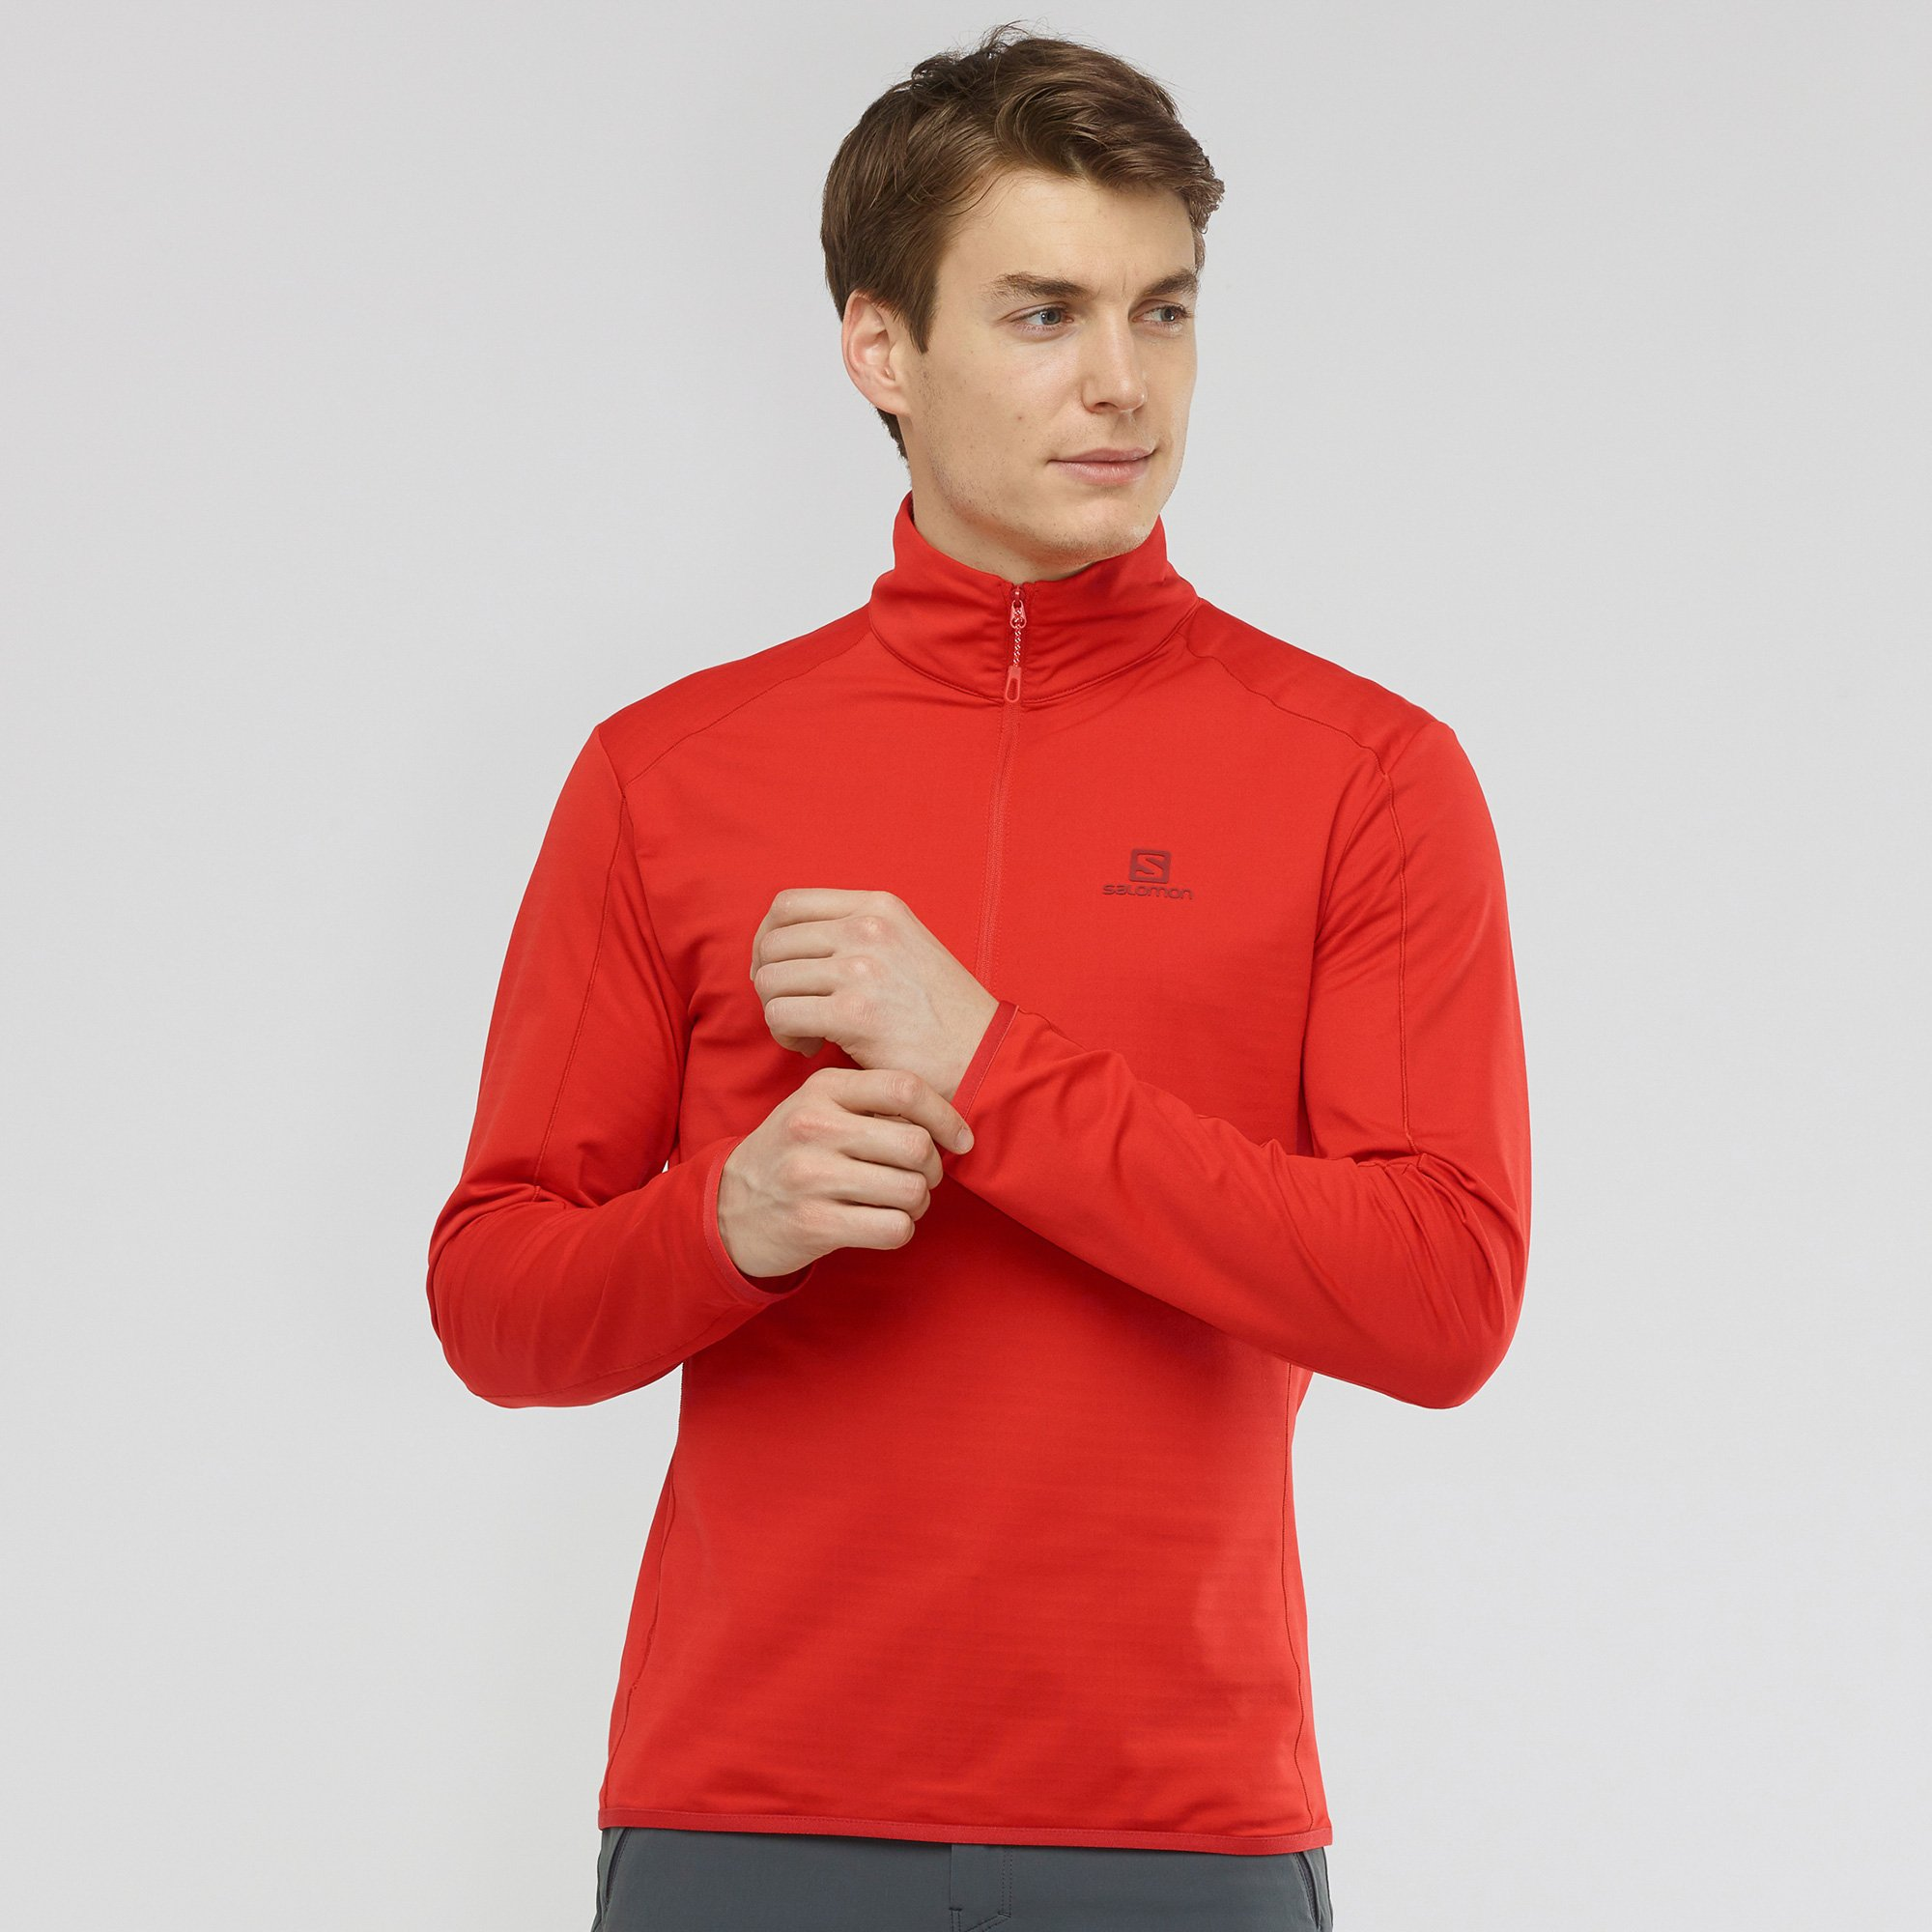 Outrack Half Zip Midlayer Goji Berry - Men's